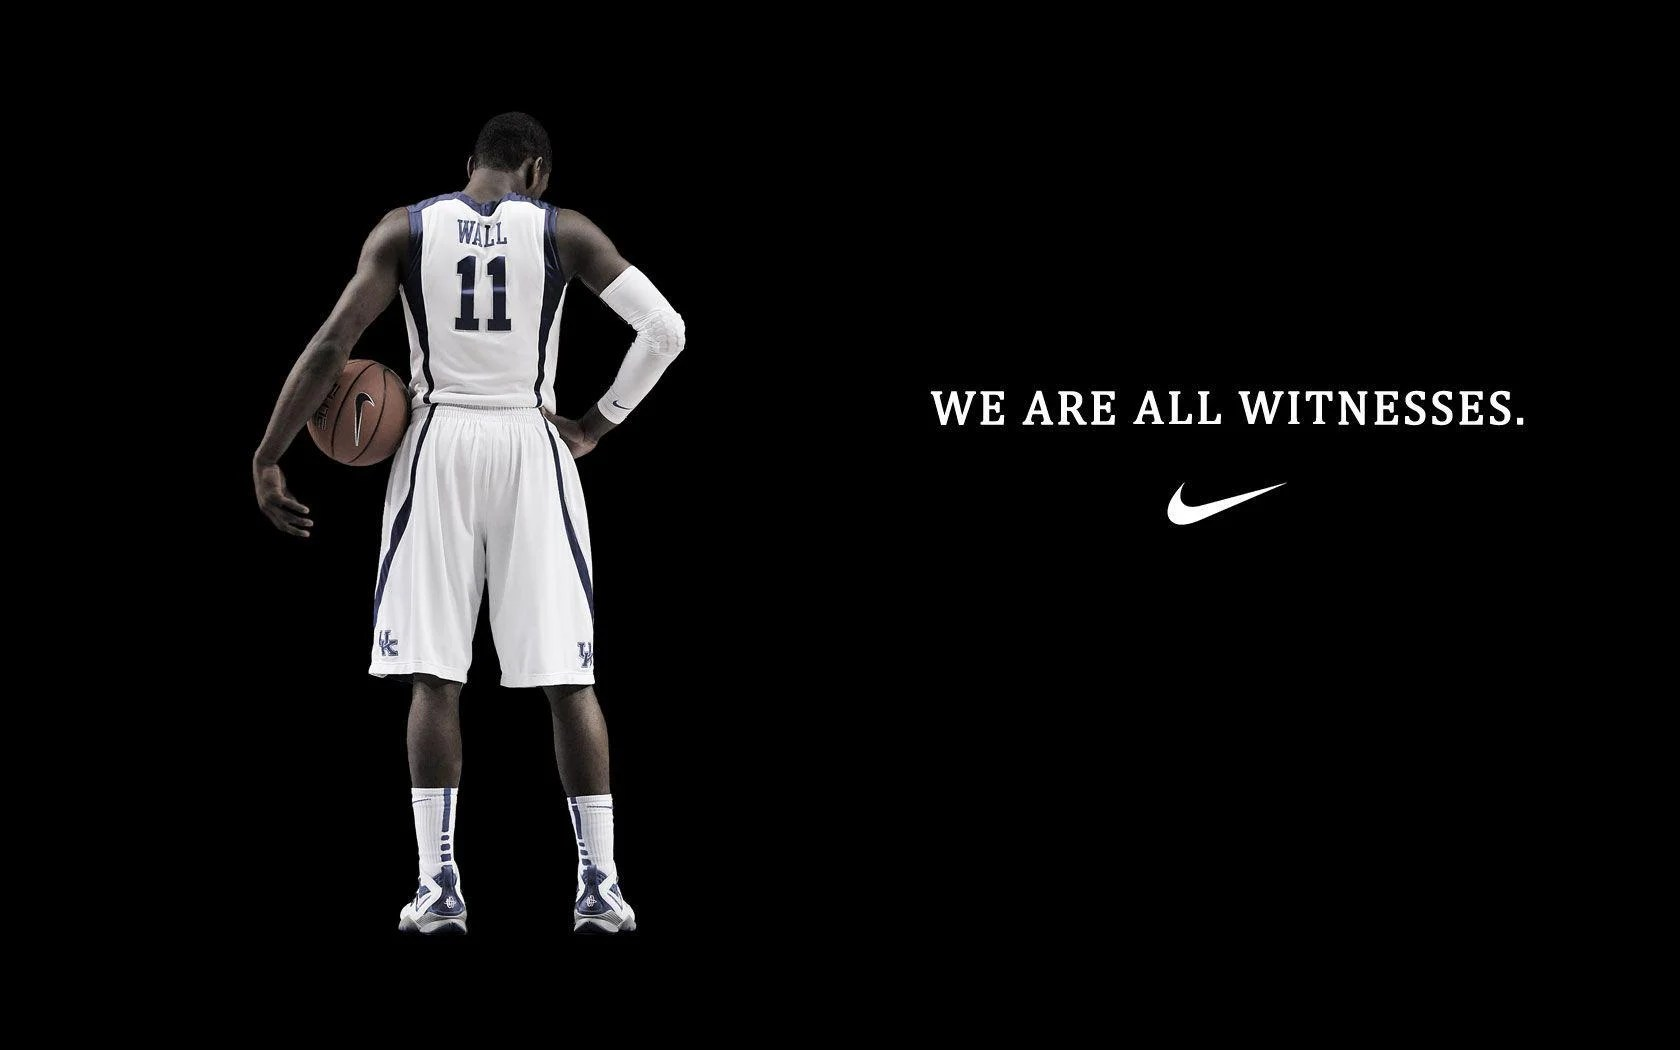 Nike Basketball Wallpapers   Wallpaper Cave Wallpapers For   Nike Basketball Wallpapers